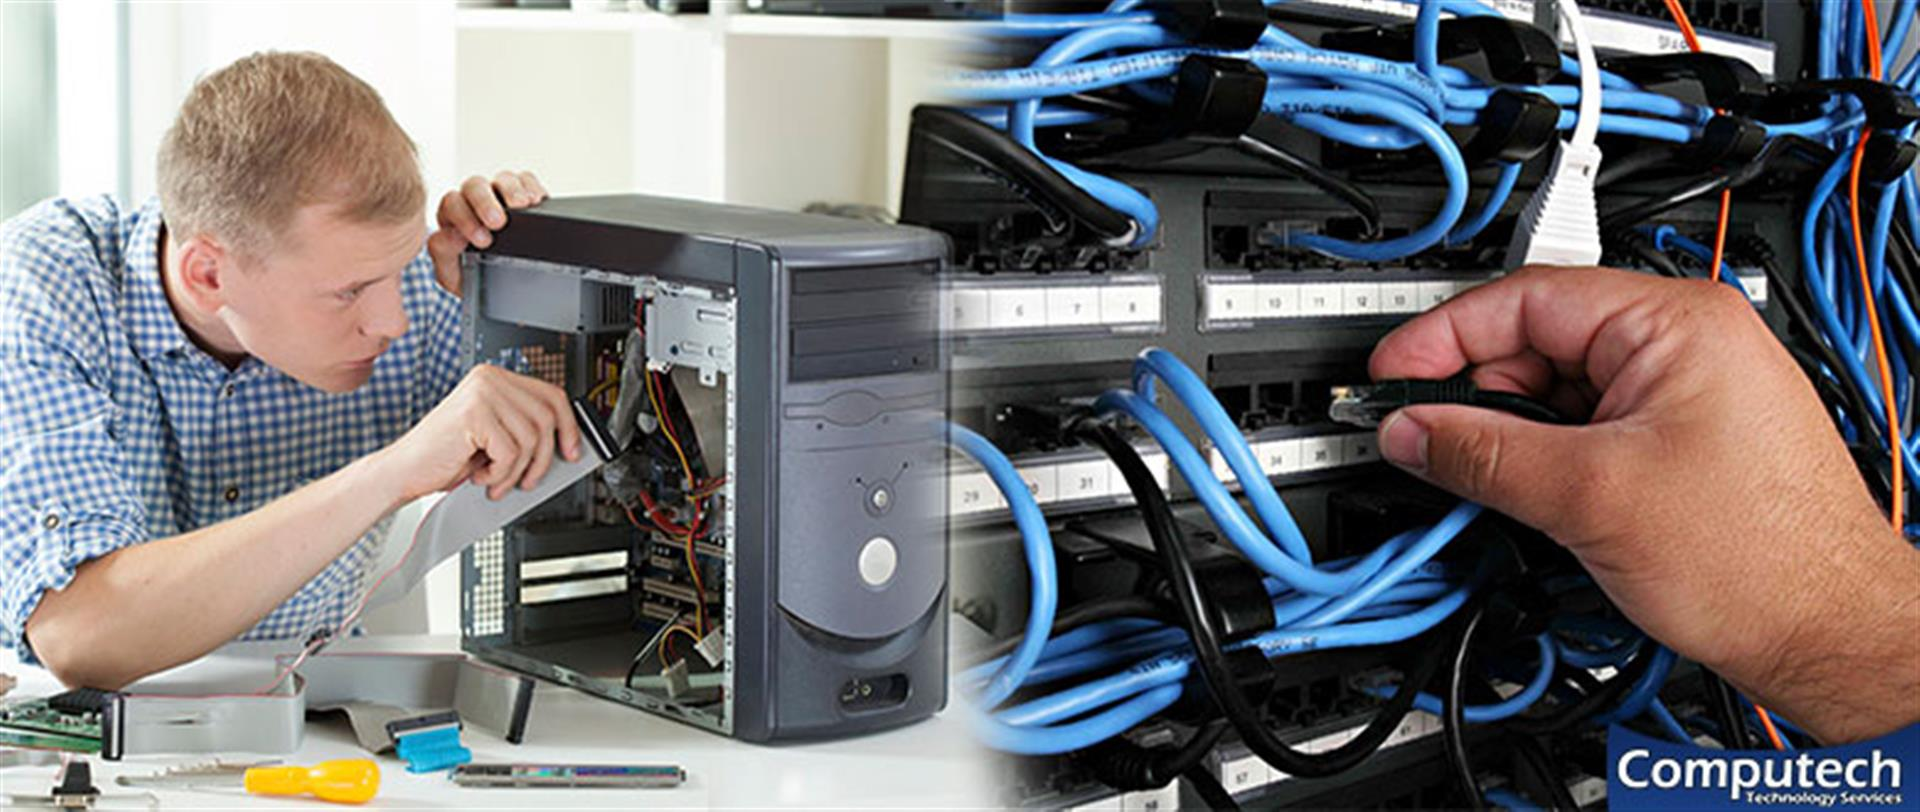 Citronelle Alabama Onsite Computer PC & Printer Repair, Networks, Telecom & Data Wiring Services